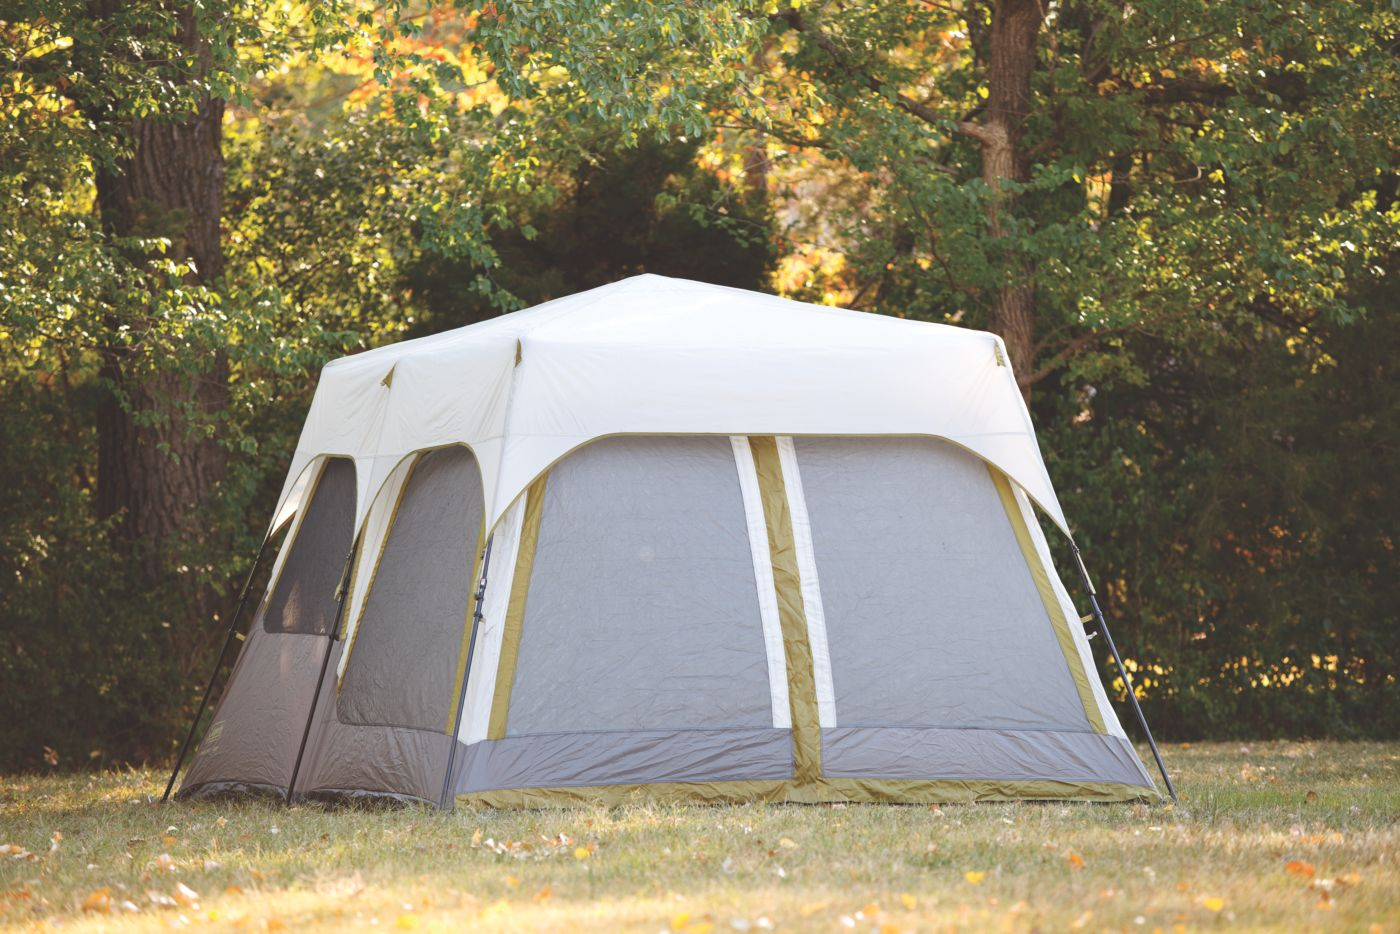 Instant Tent Rainfly Accessory  sc 1 st  Coleman & Instant Tent Rainfly Accessory for 10-Person Tent